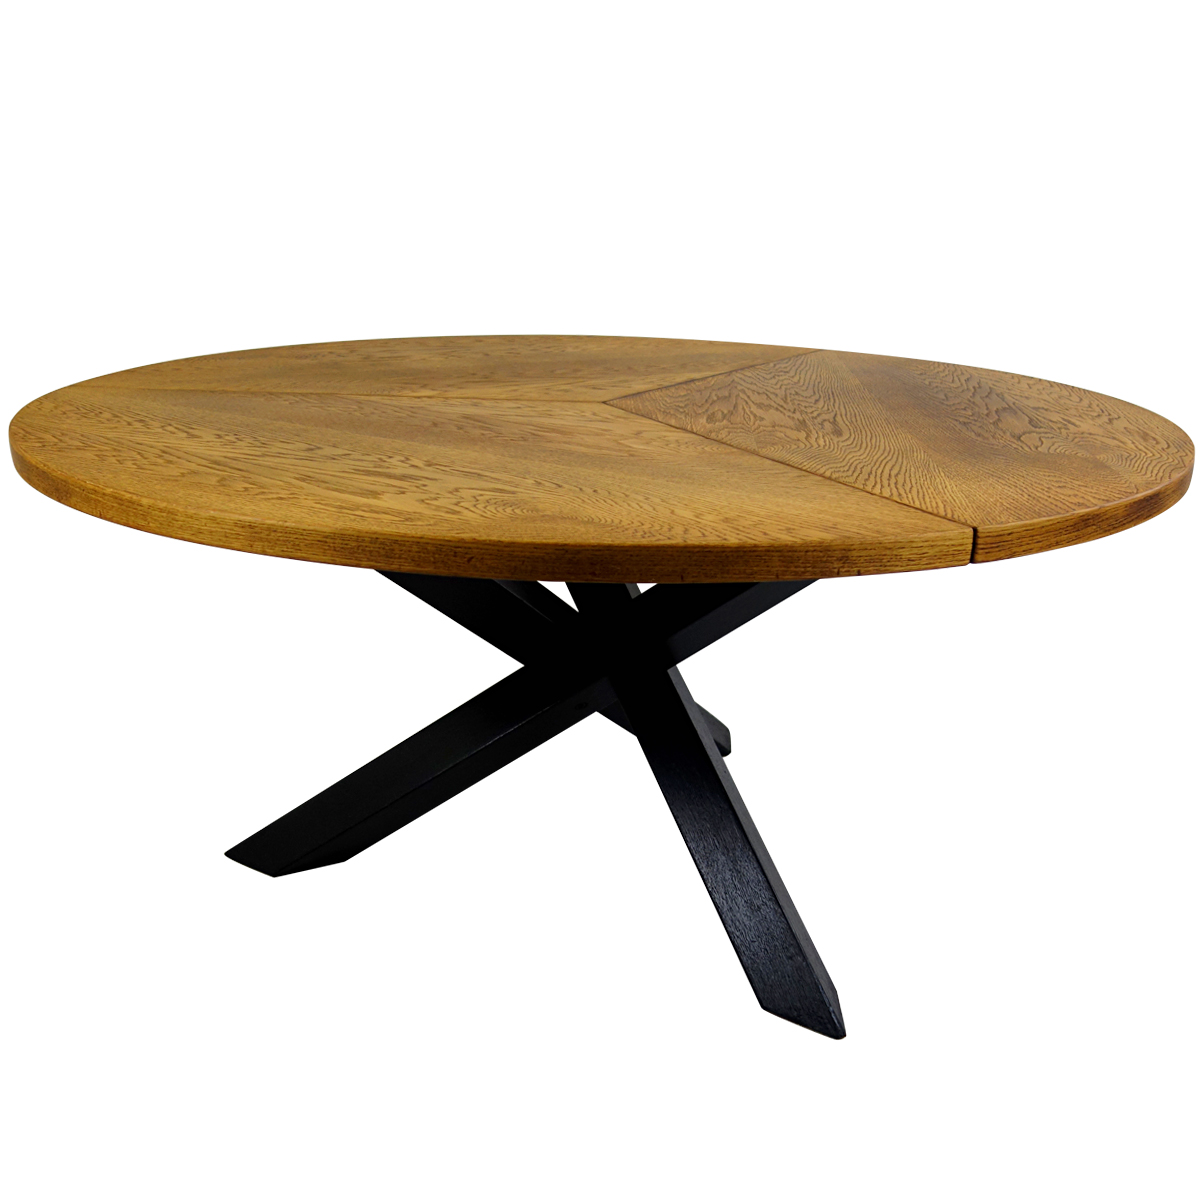 Design Bank Martin Visser.Round Mid Century Tripod Oak Dining Table By Martin Visser For T